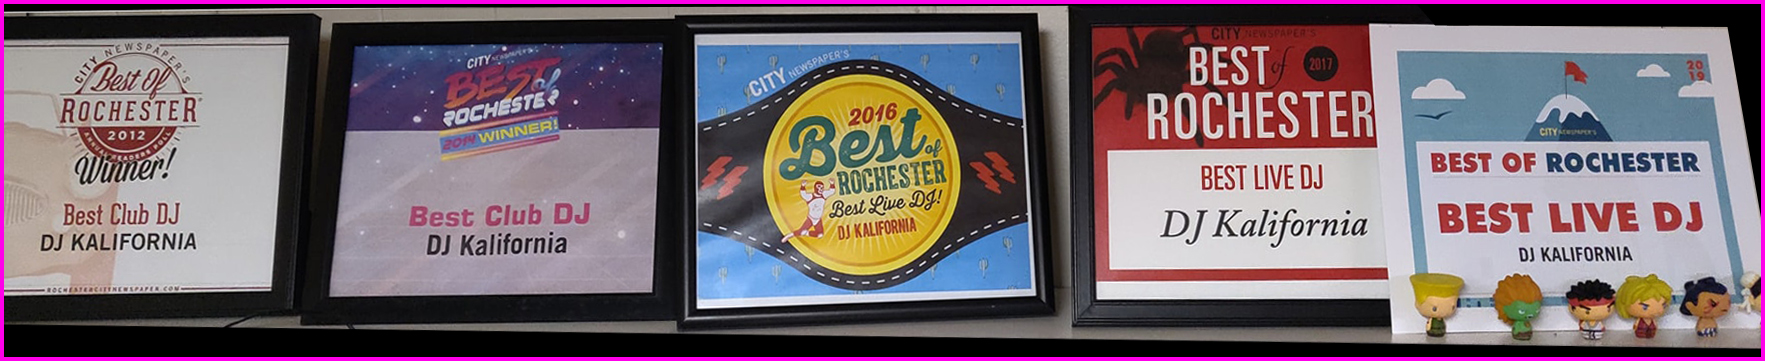 Best of Rochester Awards